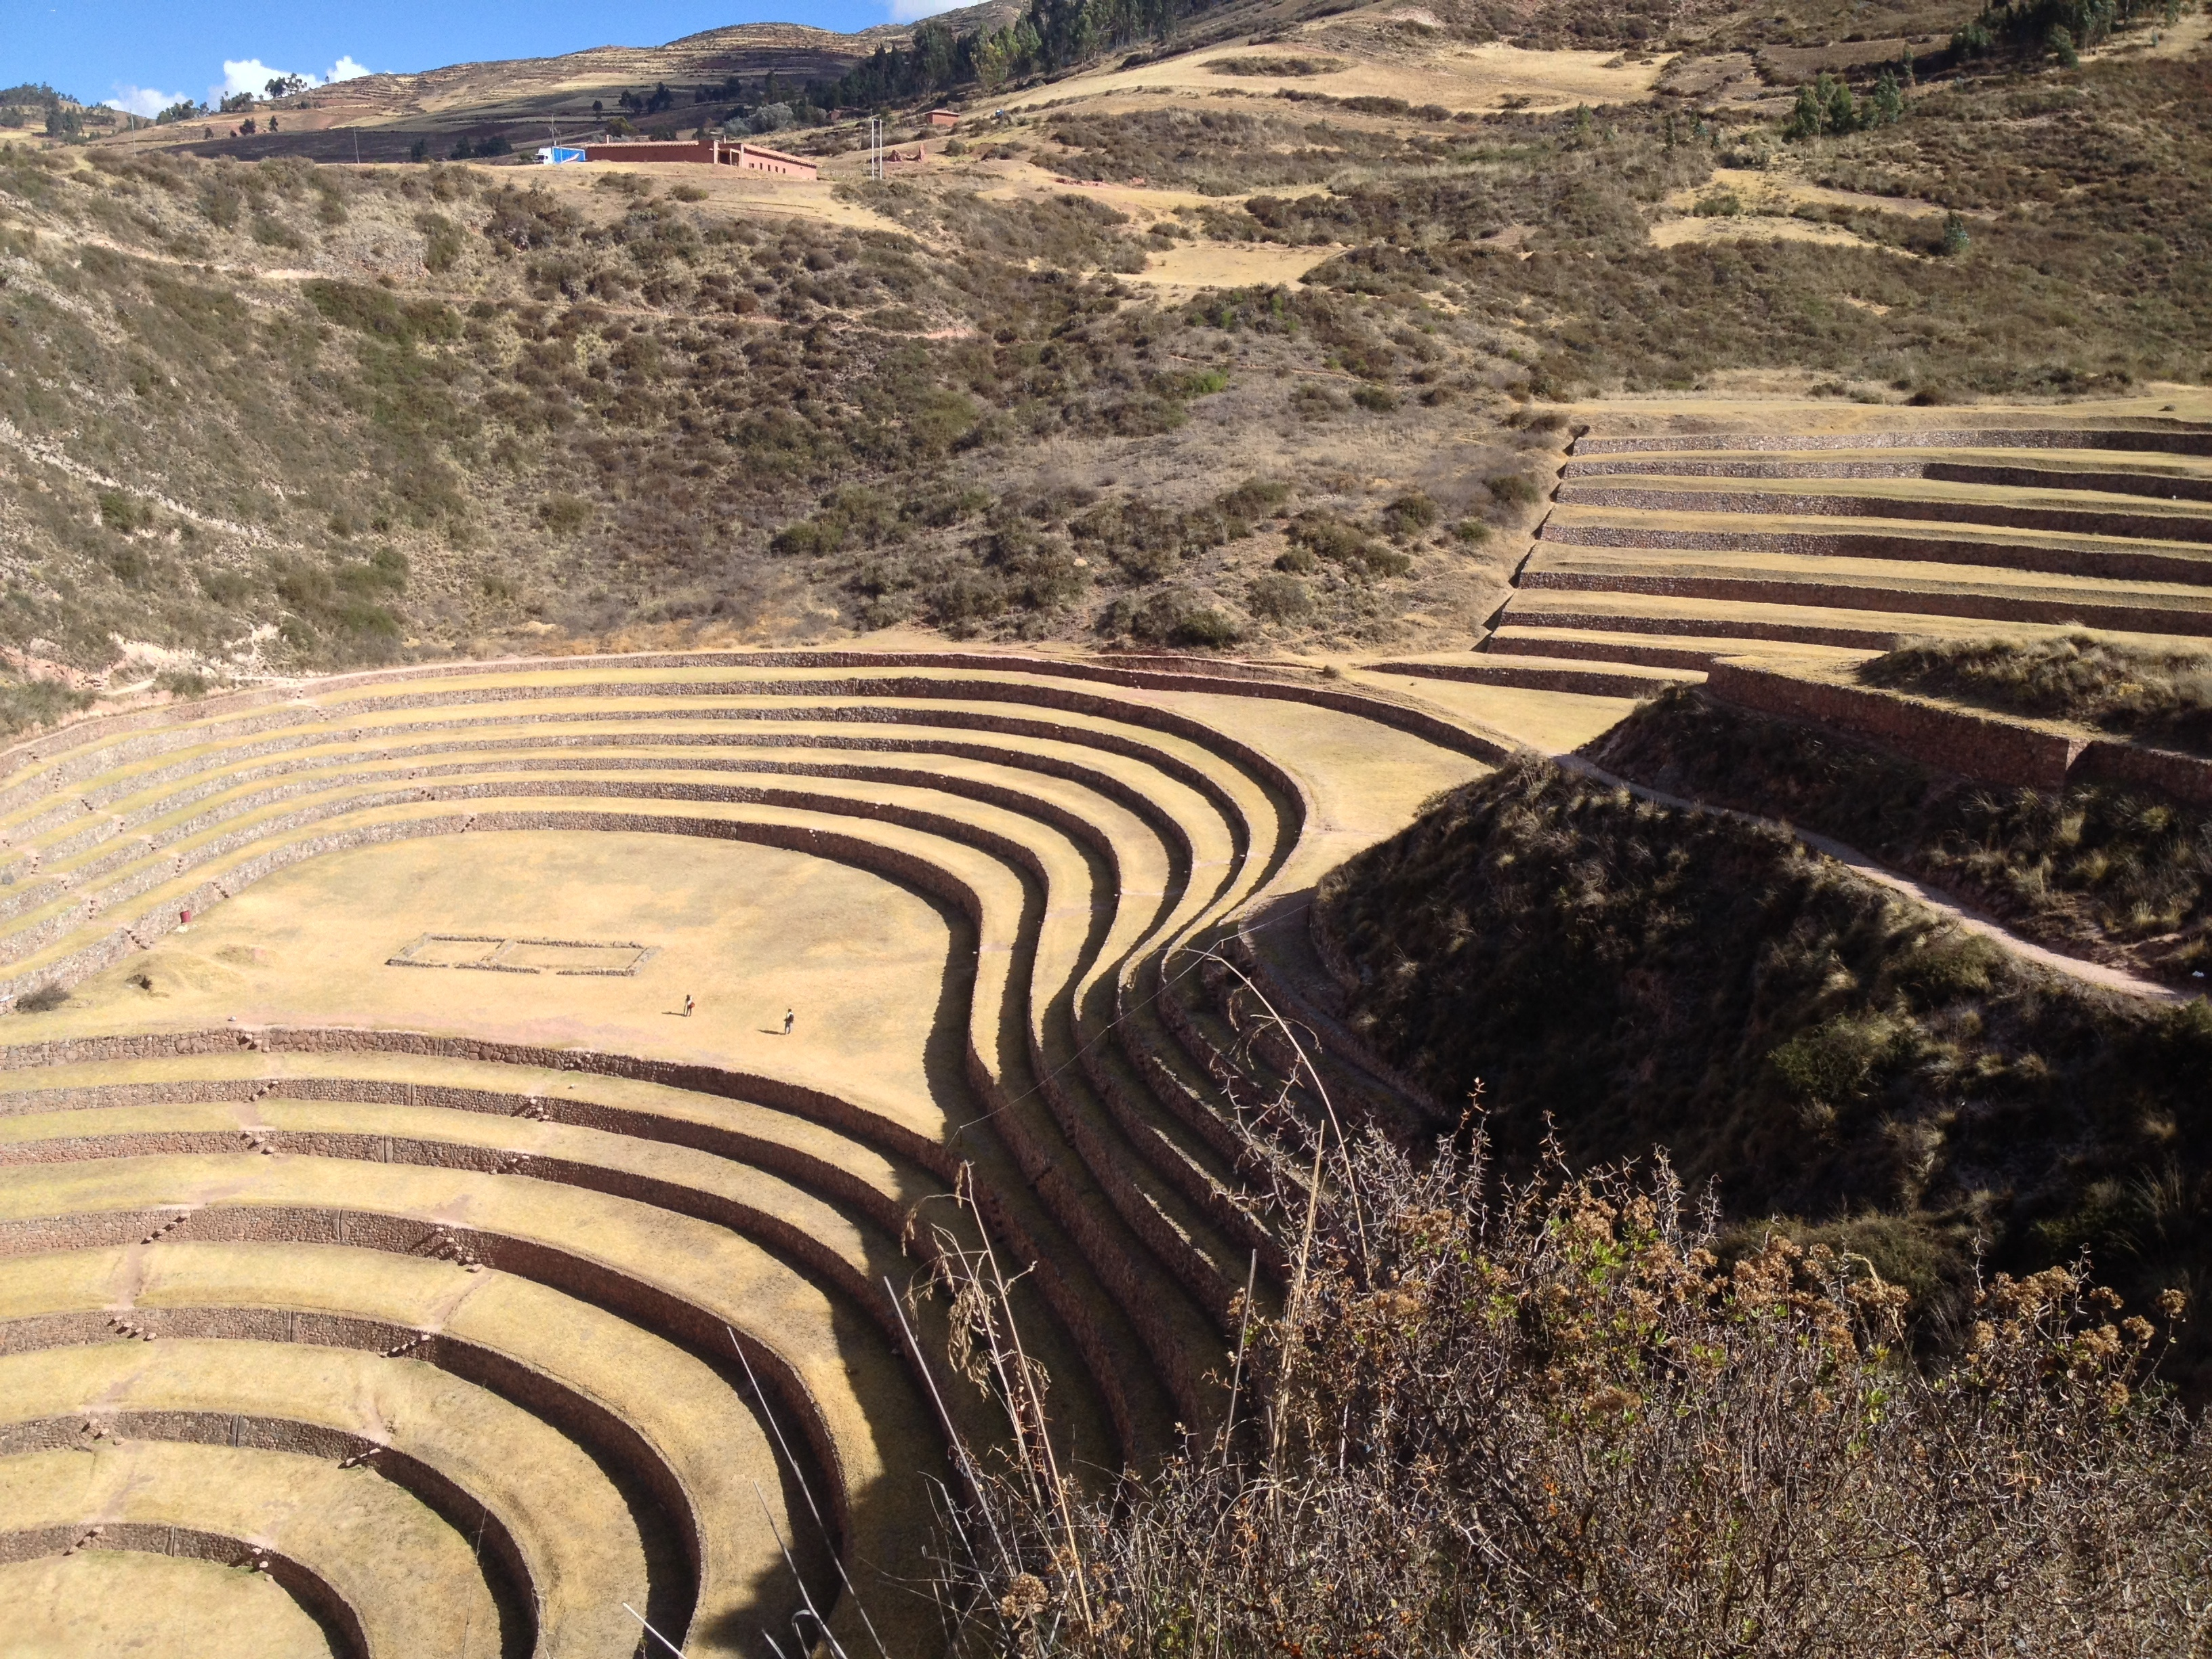 Moray Incan agriculture site.